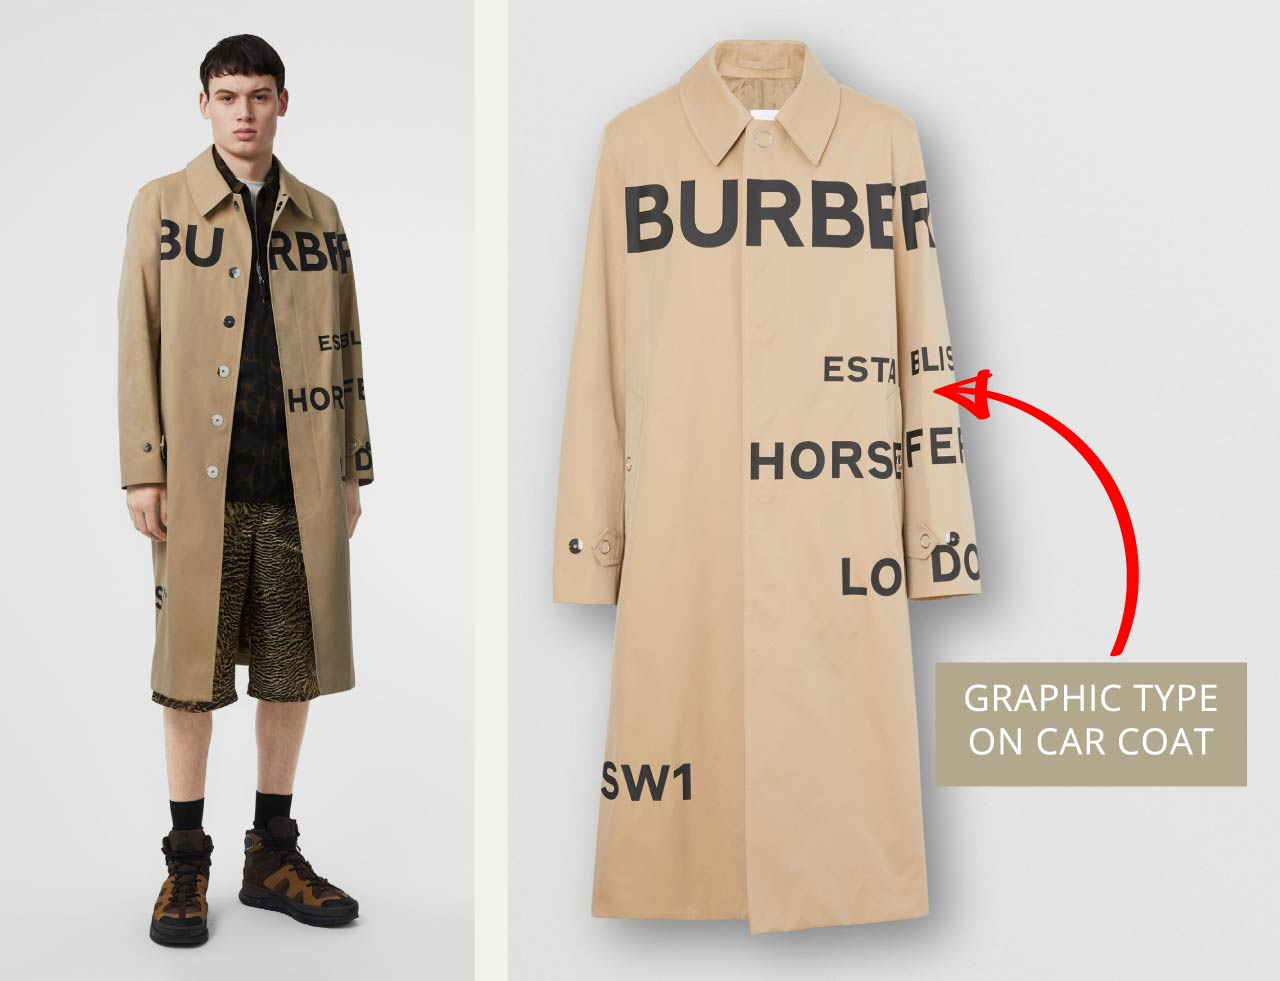 Graphic type details on men's Burberry car coat. The Cutting Class.